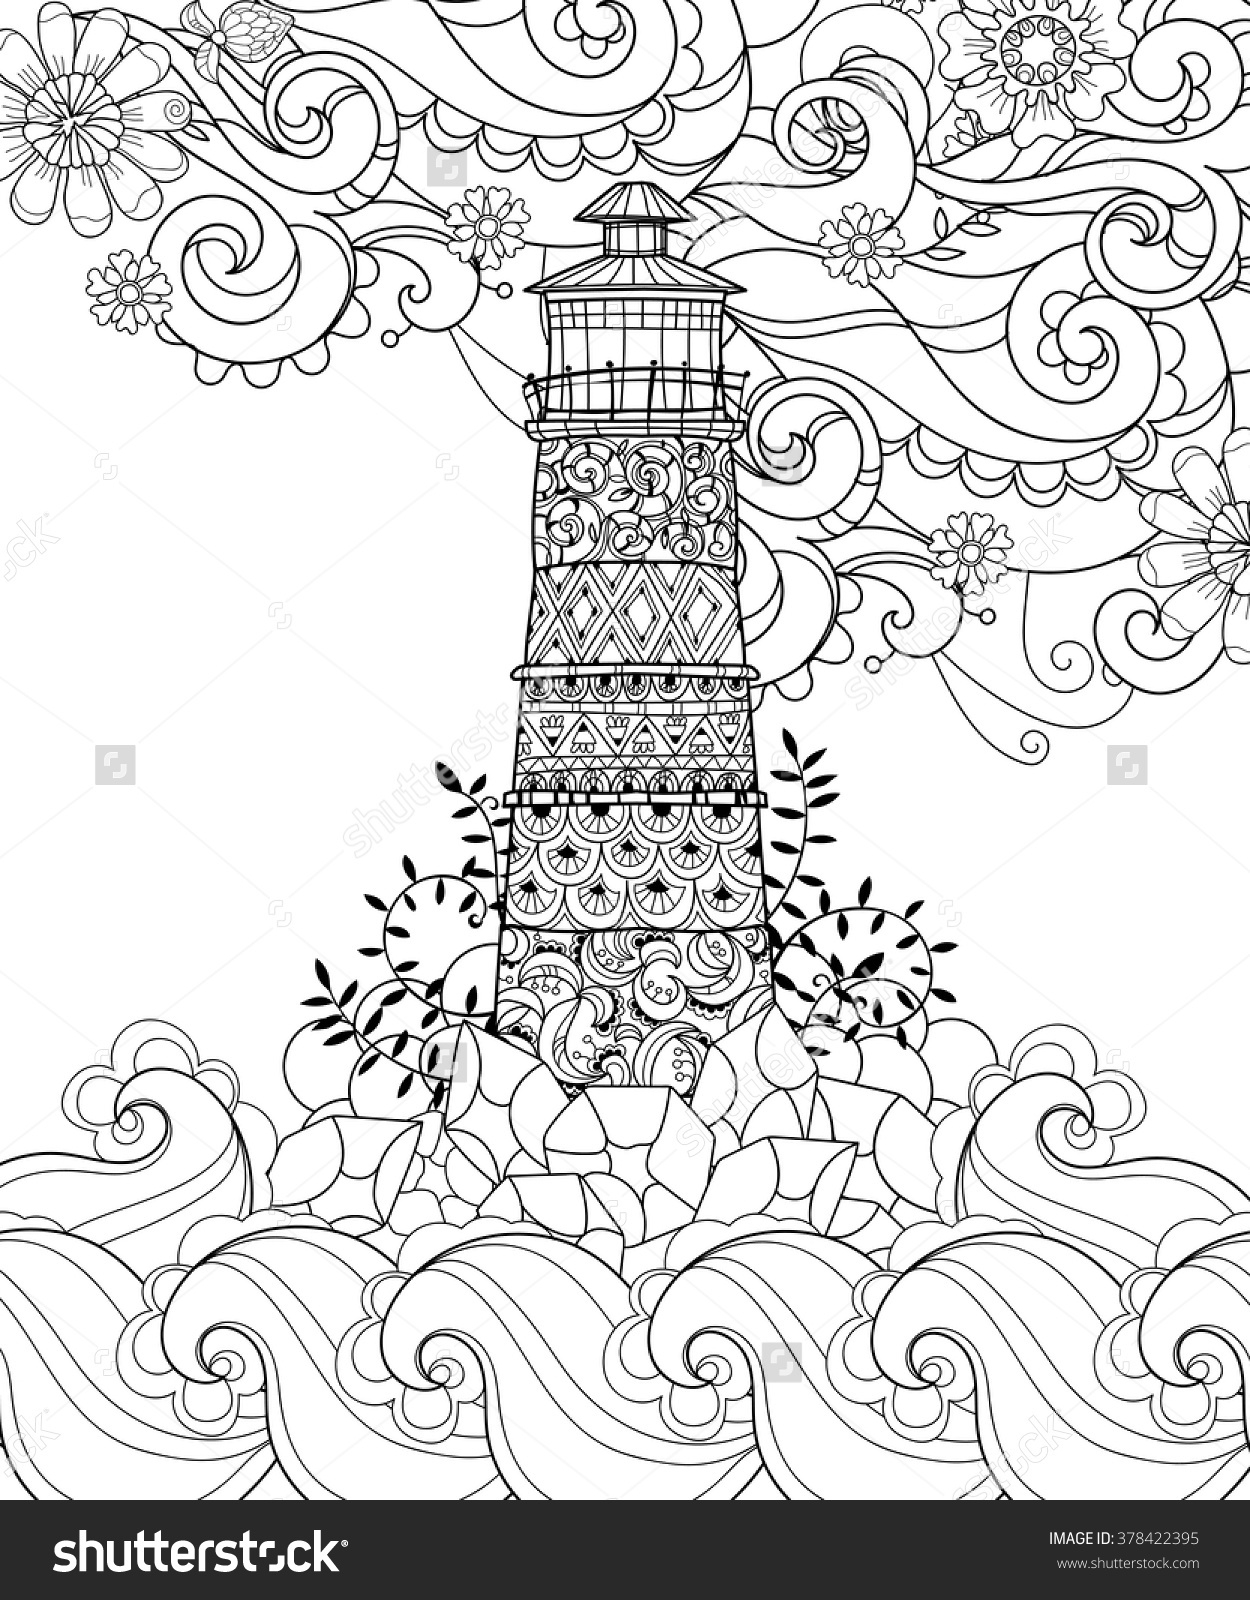 1250x1600 Waves Coloring Pages Collection